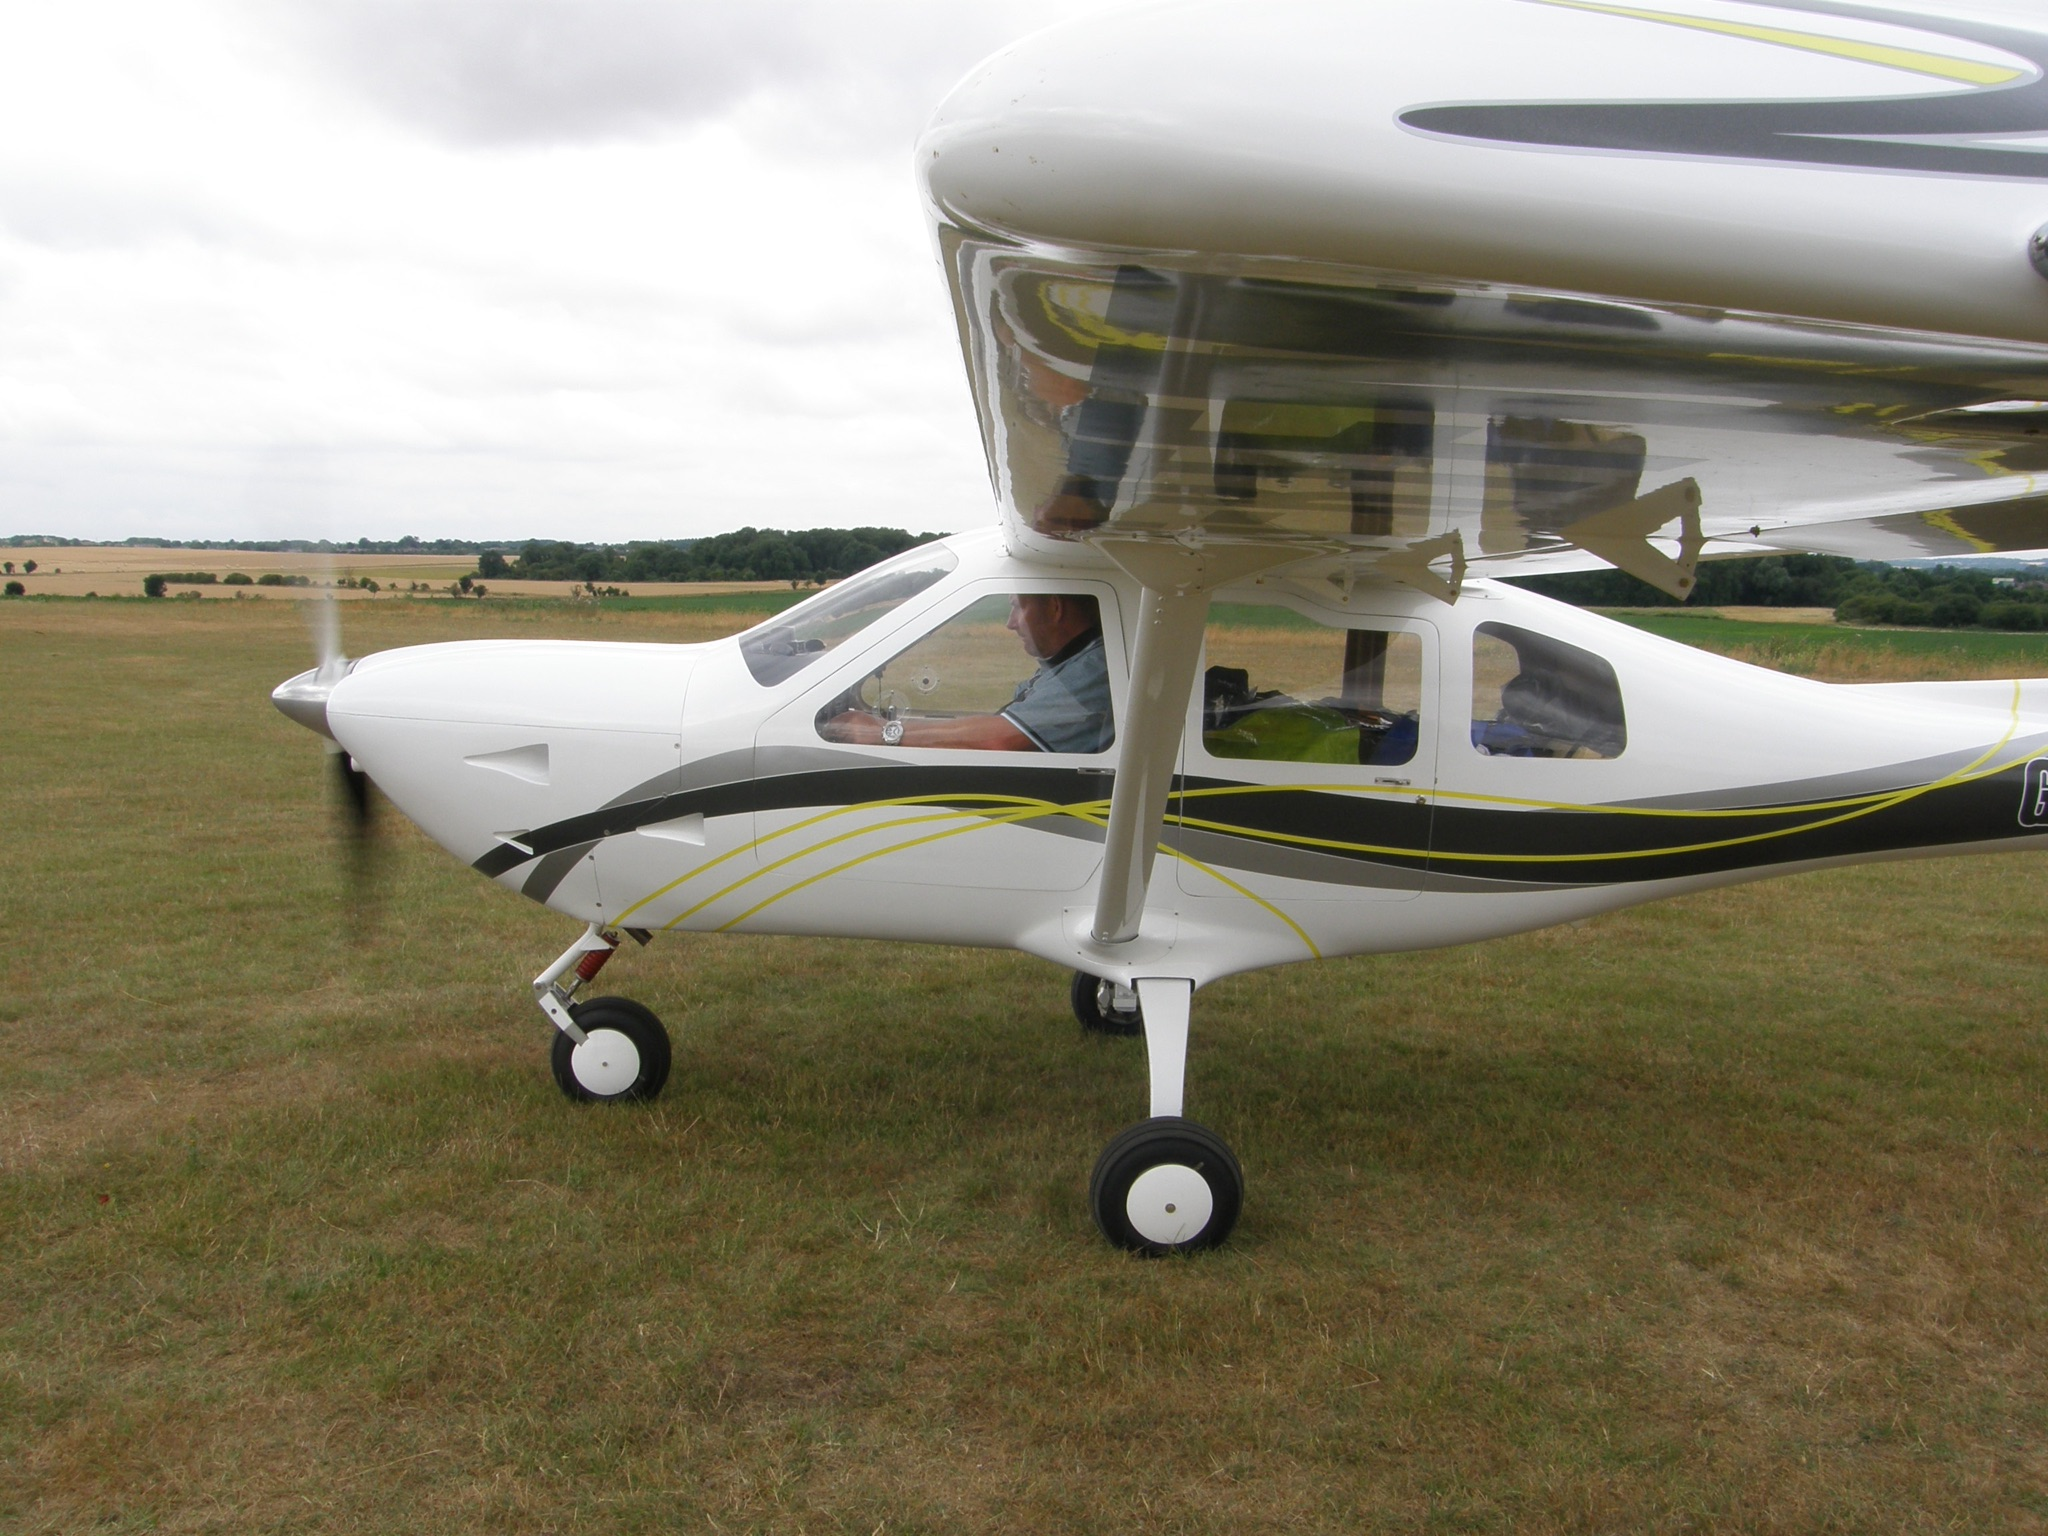 Jabiru J400 4 Seat Group A Light Aircraft For Sale £49,995